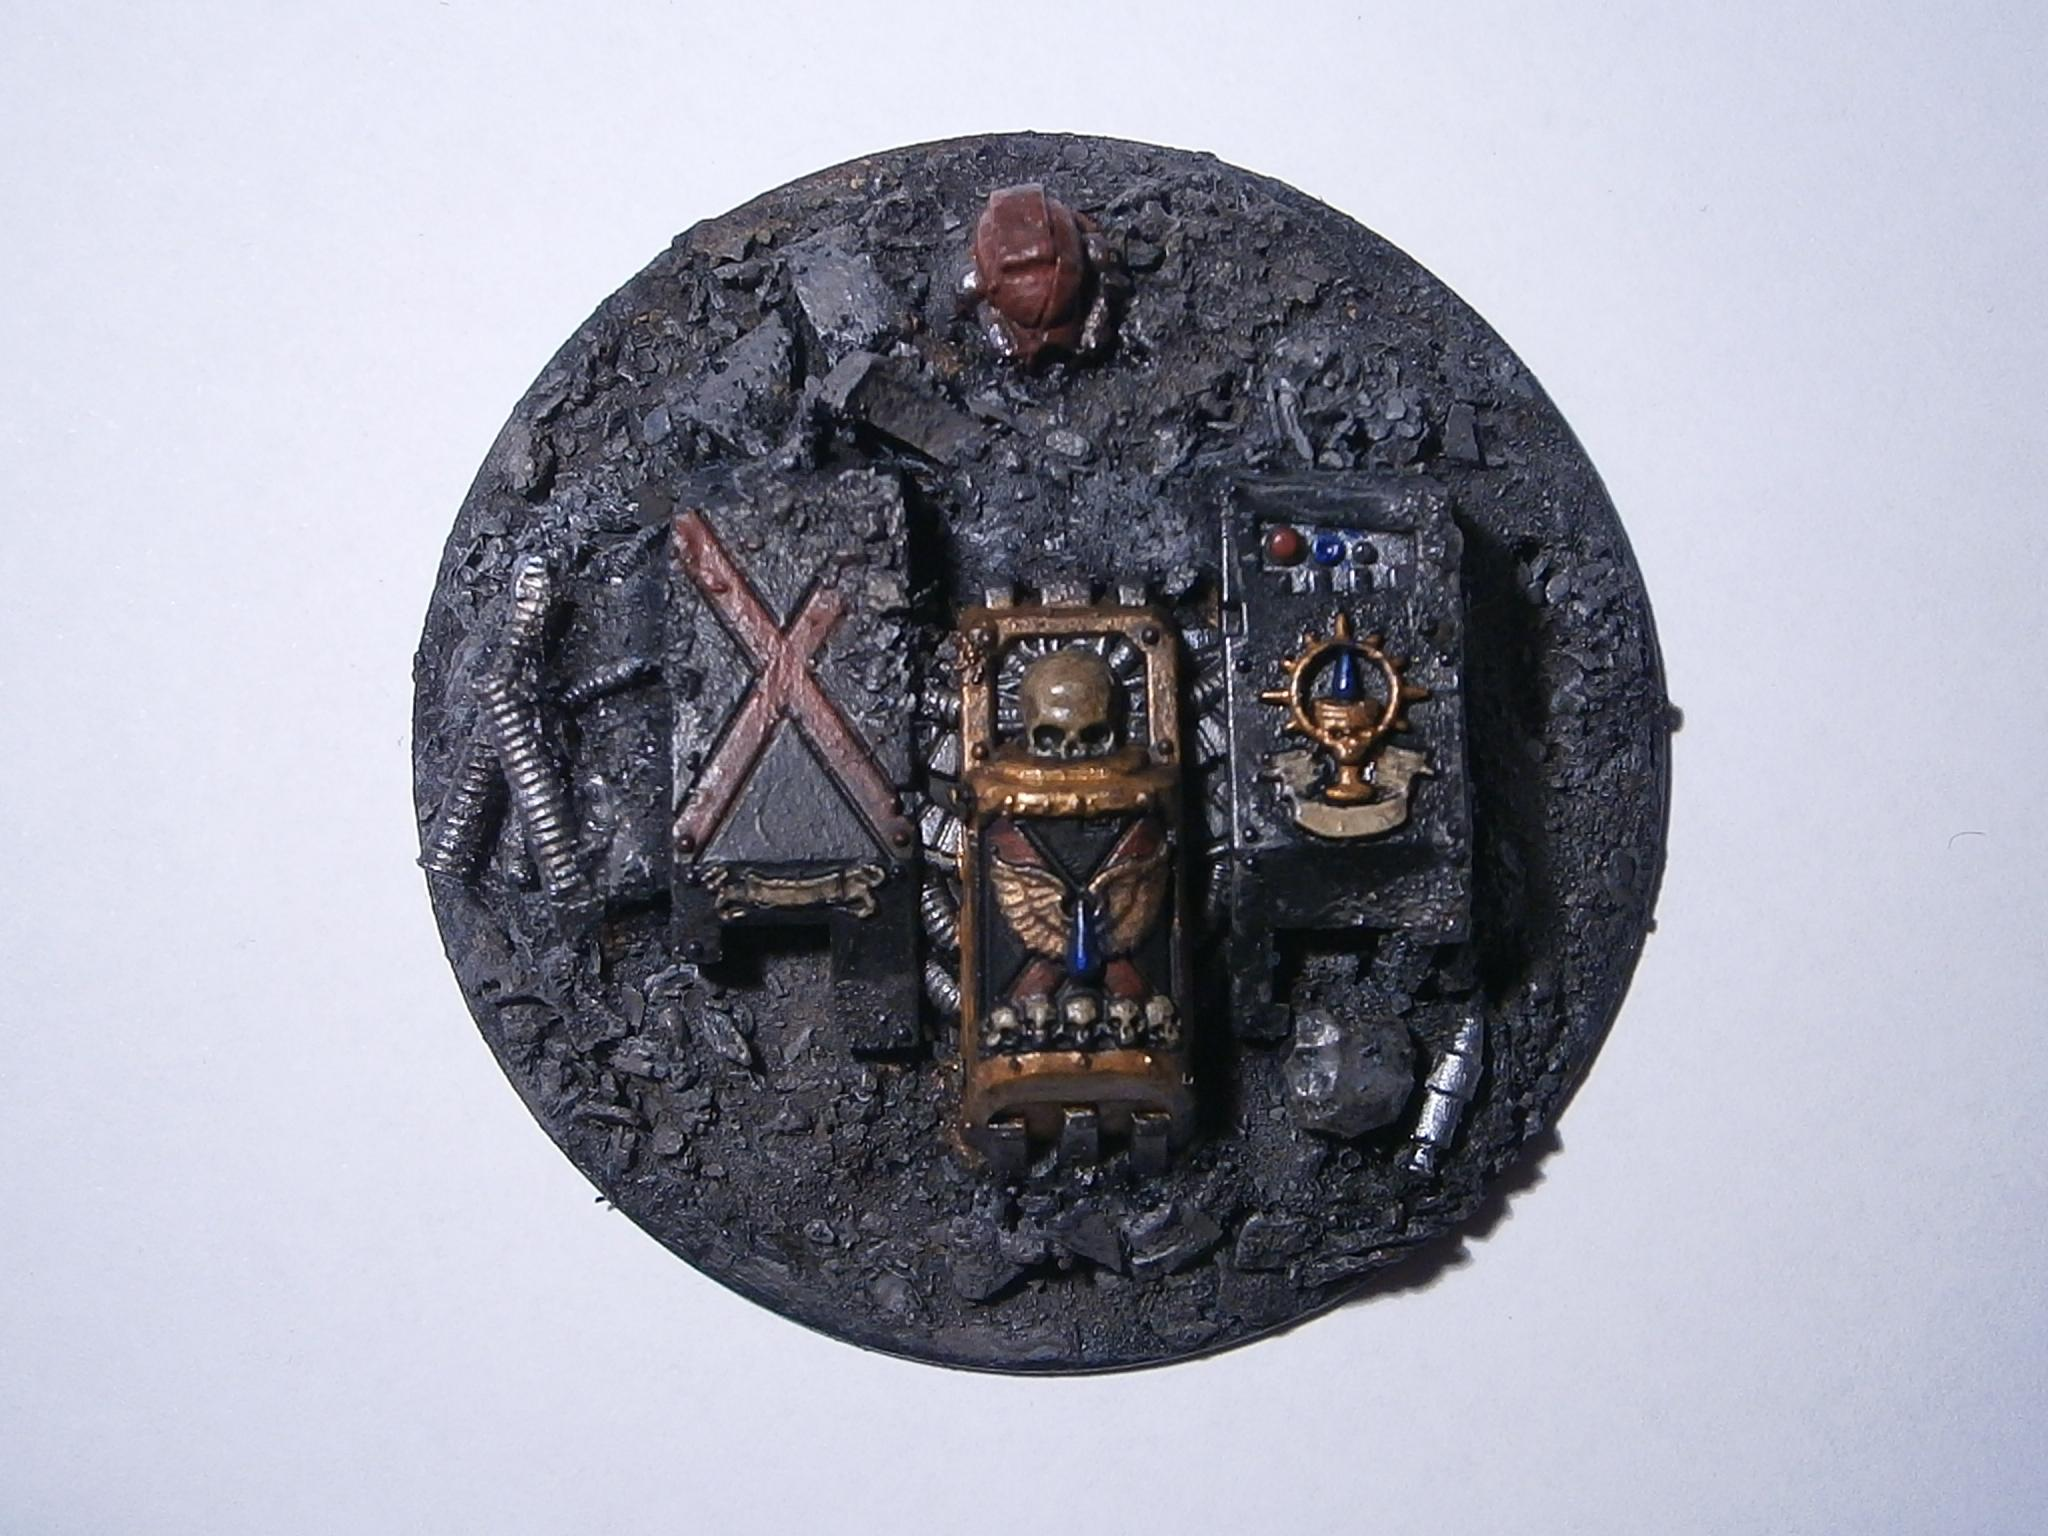 Blood Angels, Death Company, Dreadnought, Objective Marker, Rubble, Space Marines, Warhammer 40,000, Wreck